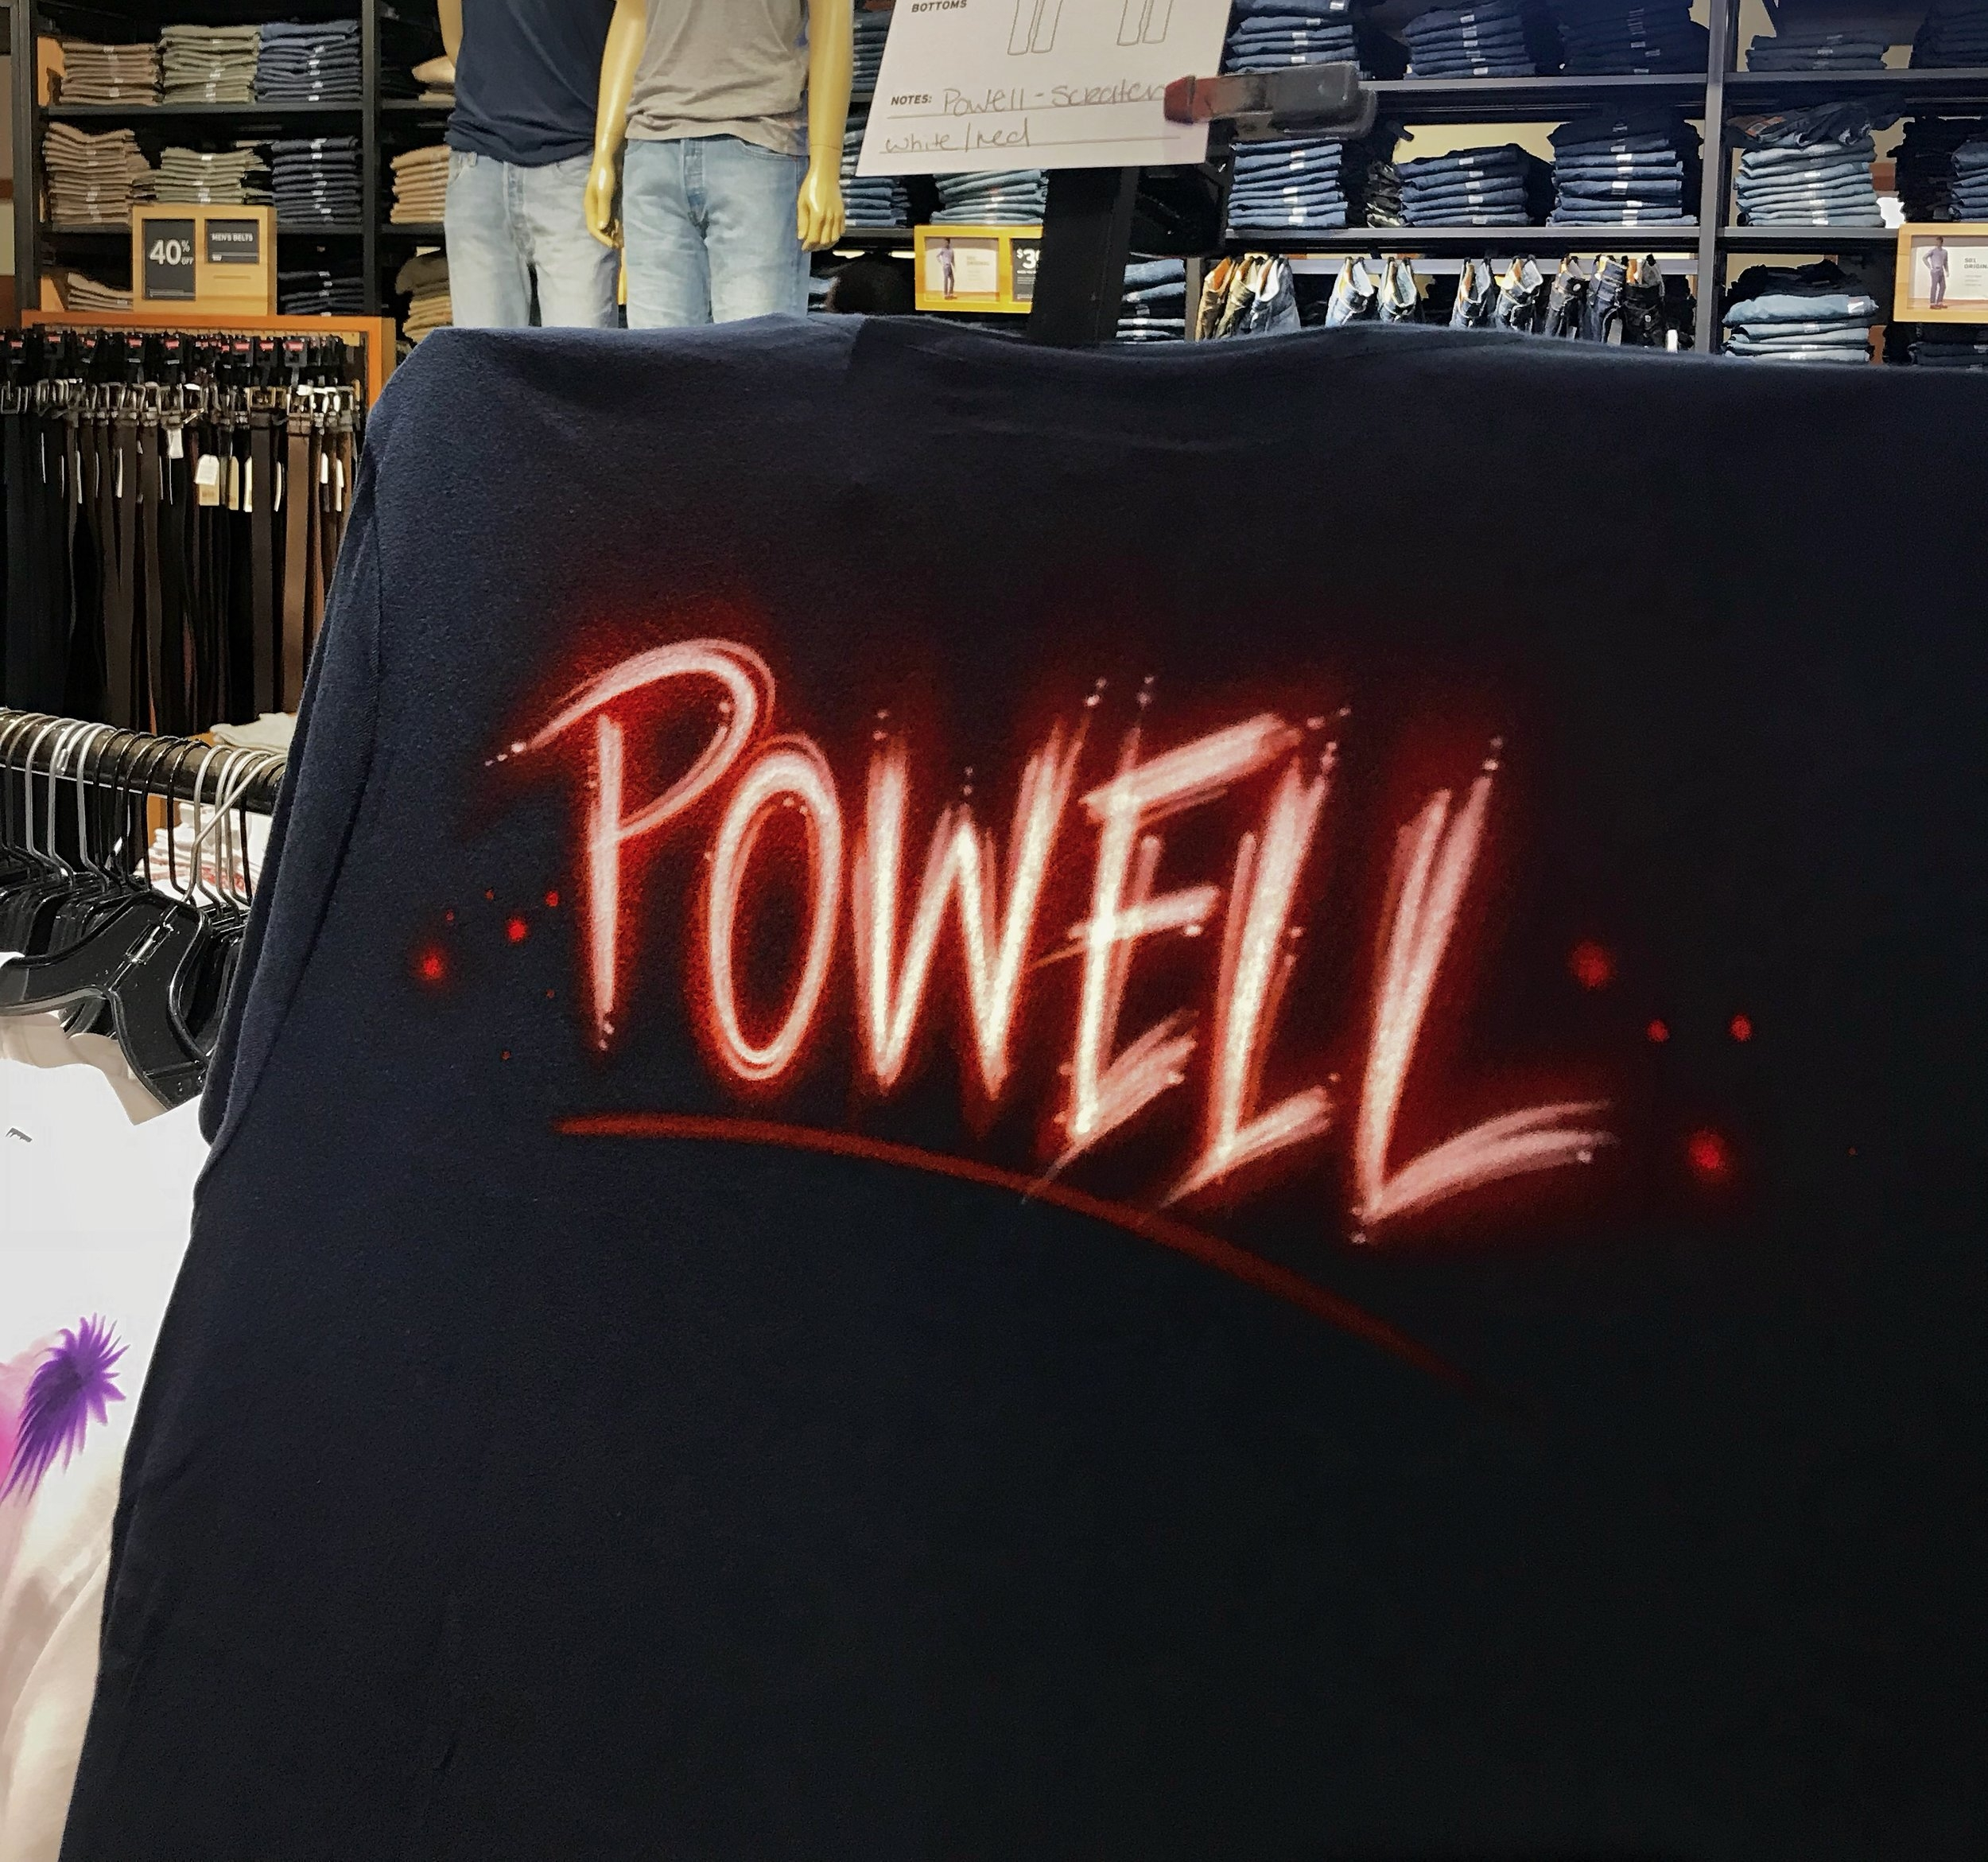 Airbrushed Levi's t-shirt Orlando Florida Scratch lettering